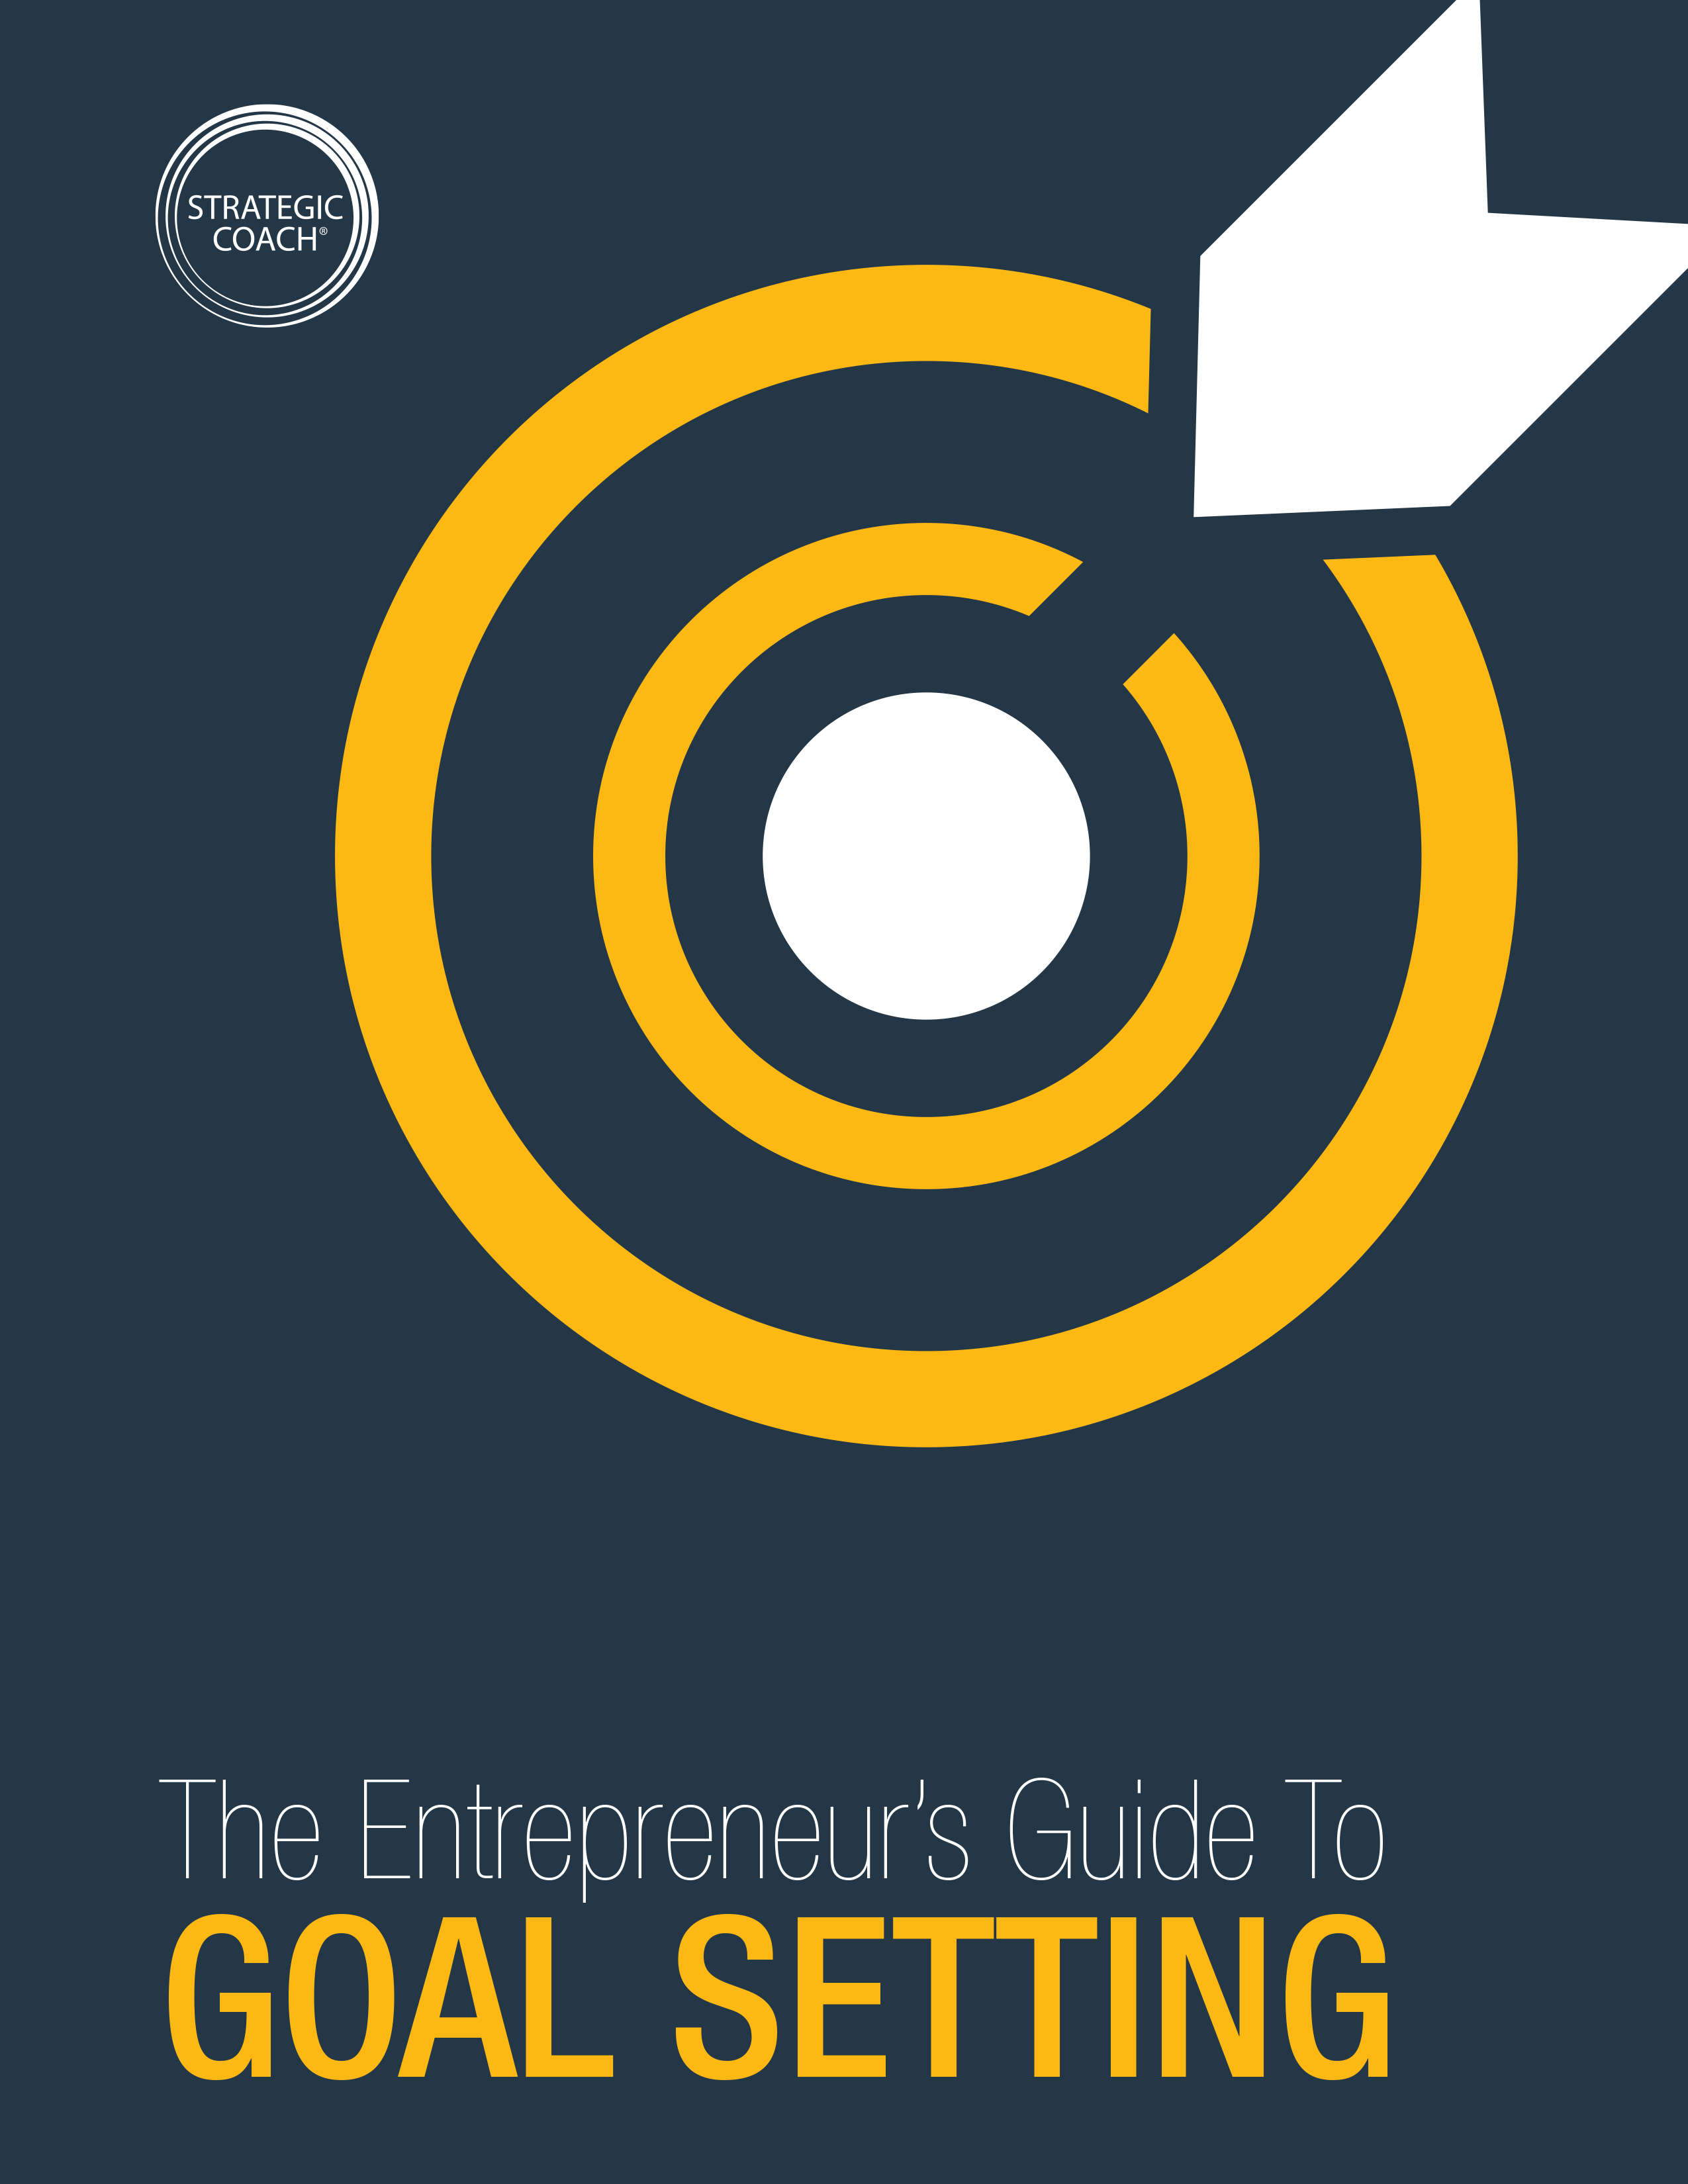 The Entrepreneur's Guide To Goal Setting